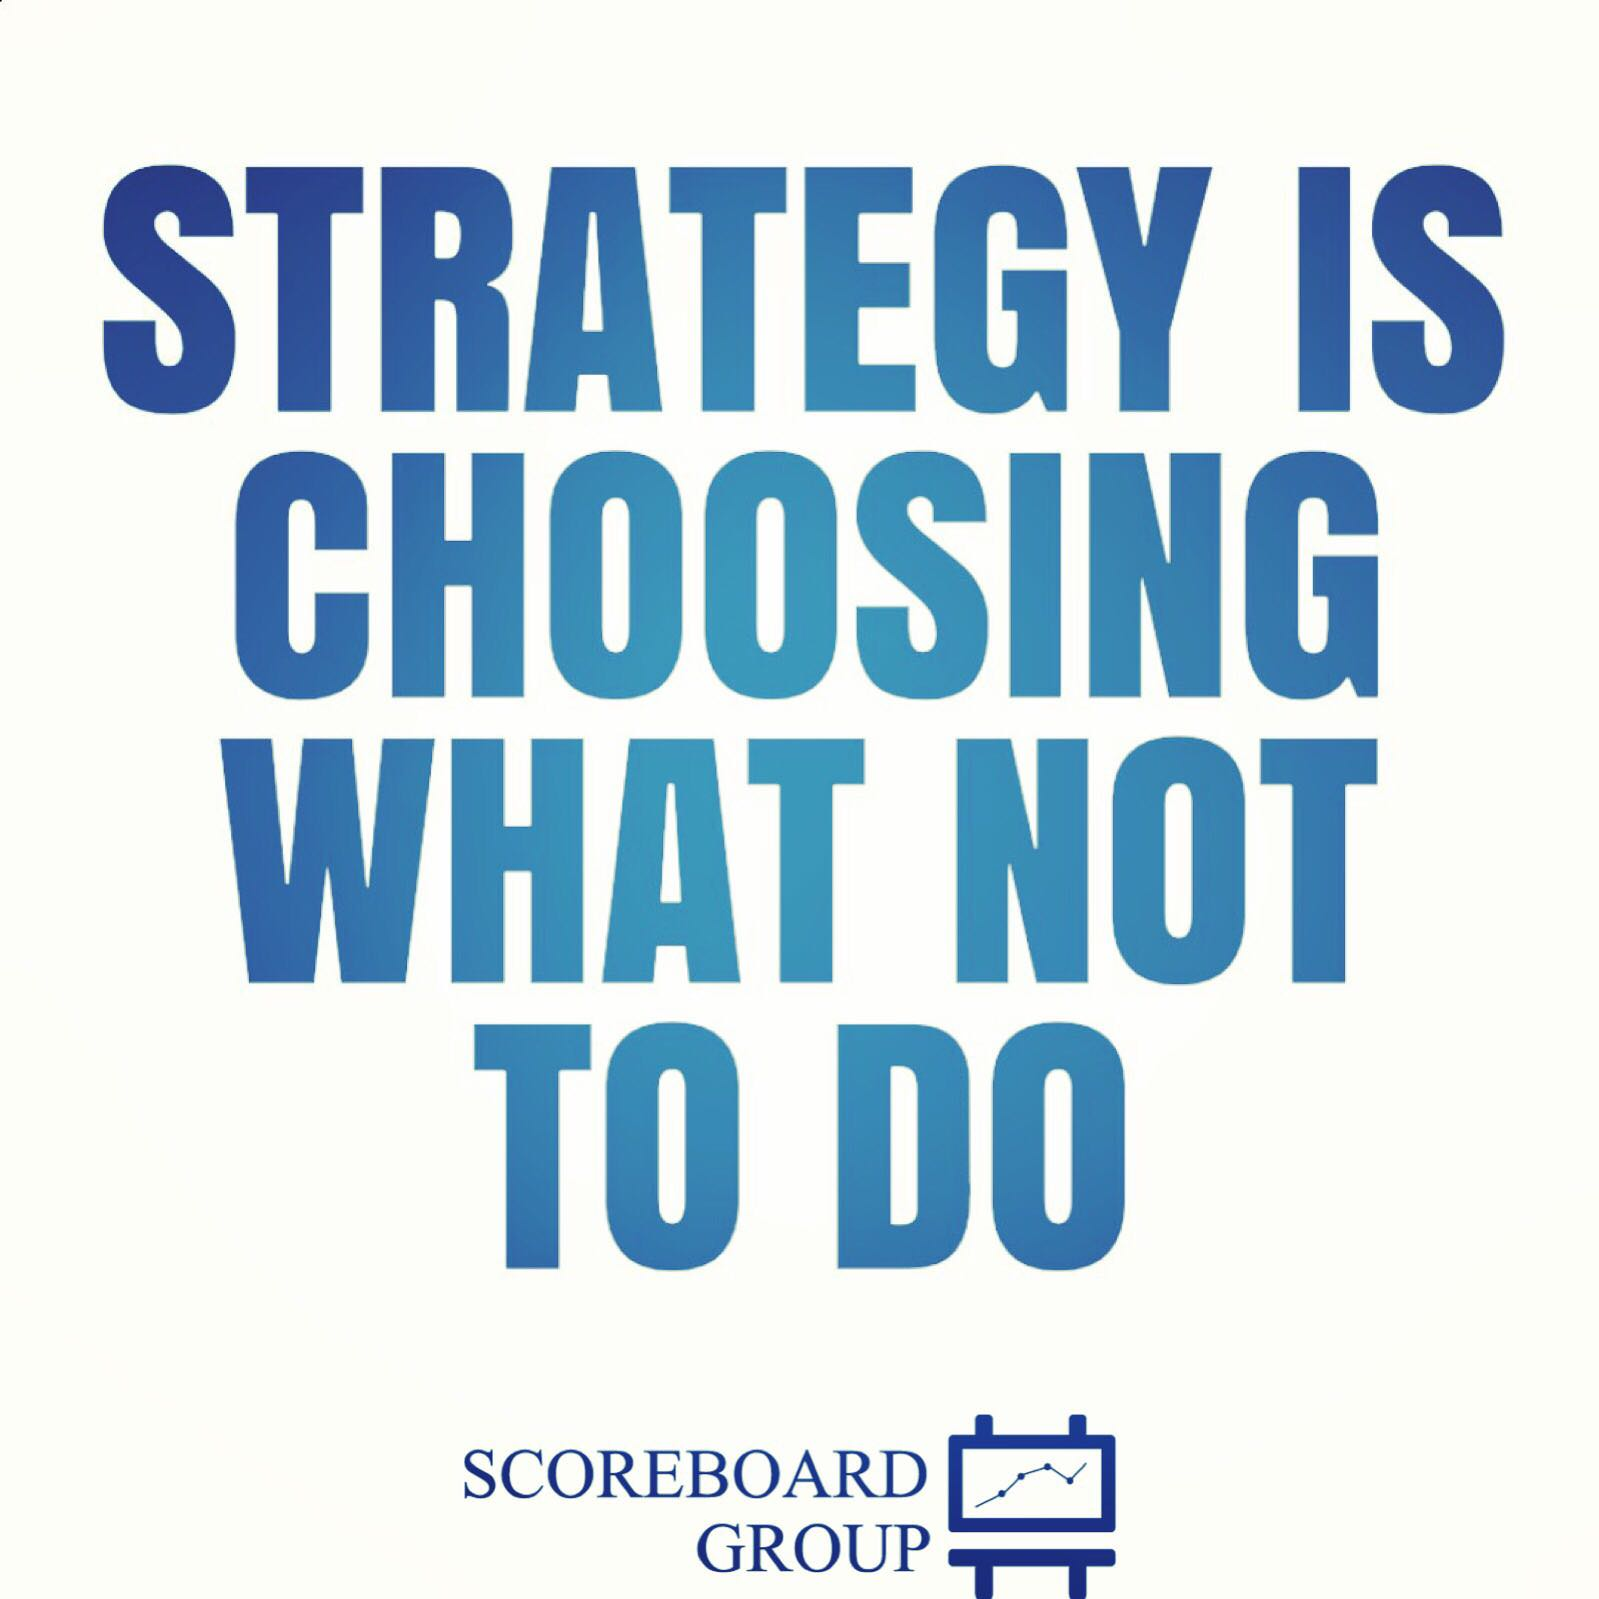 STRATEGY Is CHOOSING WHAT NOT TO DO SCOREBOARD GROUP 1—r https://inspirational.ly